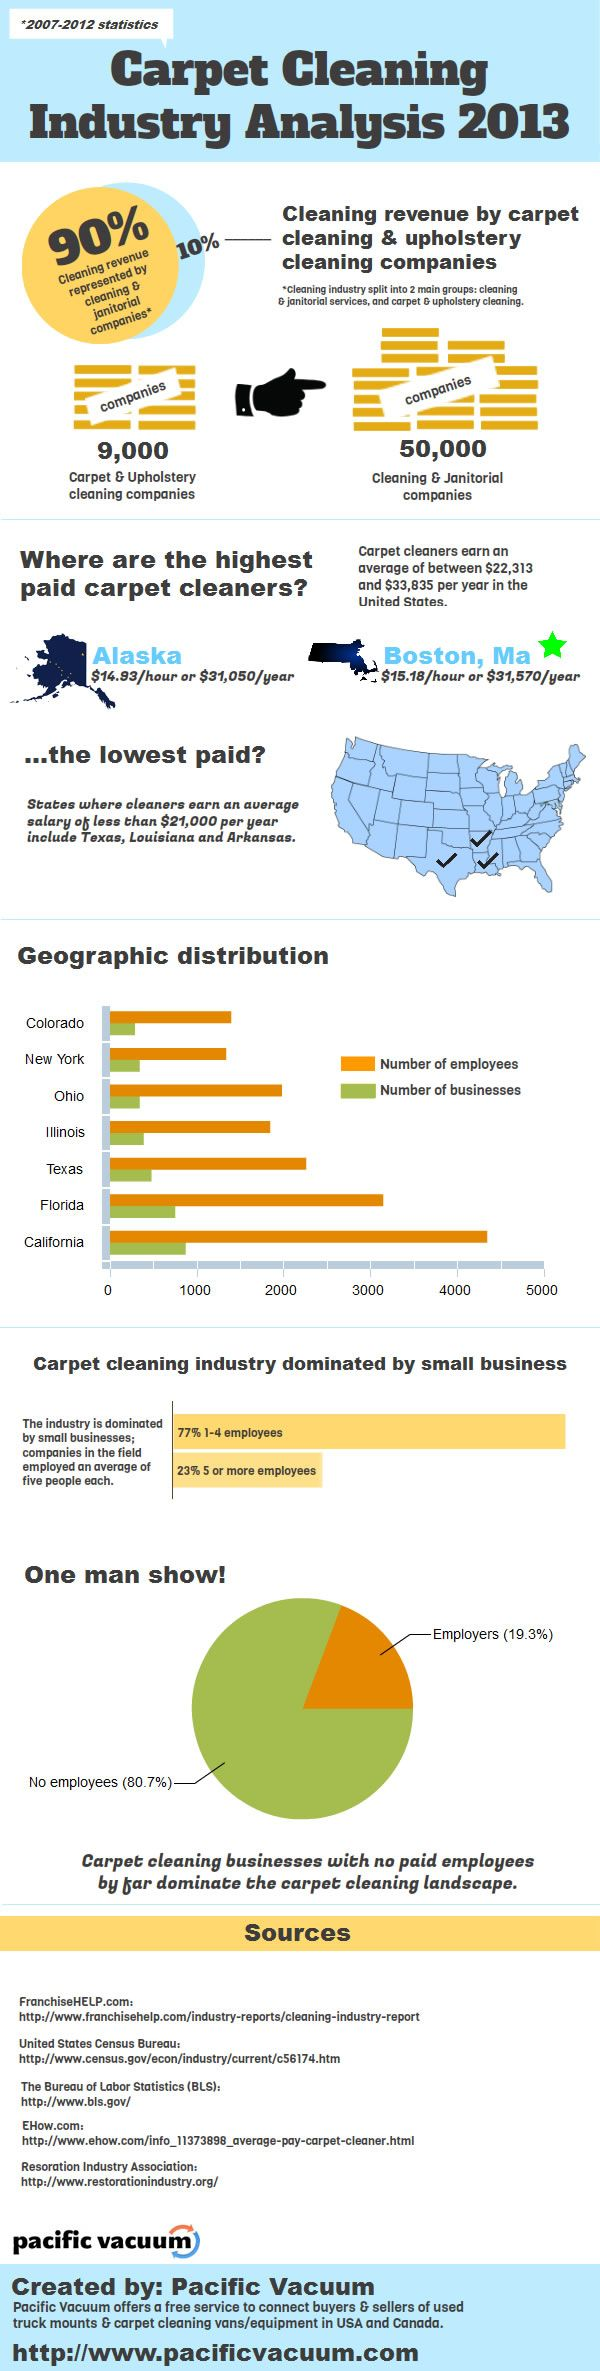 Carpet cleaning industry analysis 2013 new infographic about the carpet cleaning industry